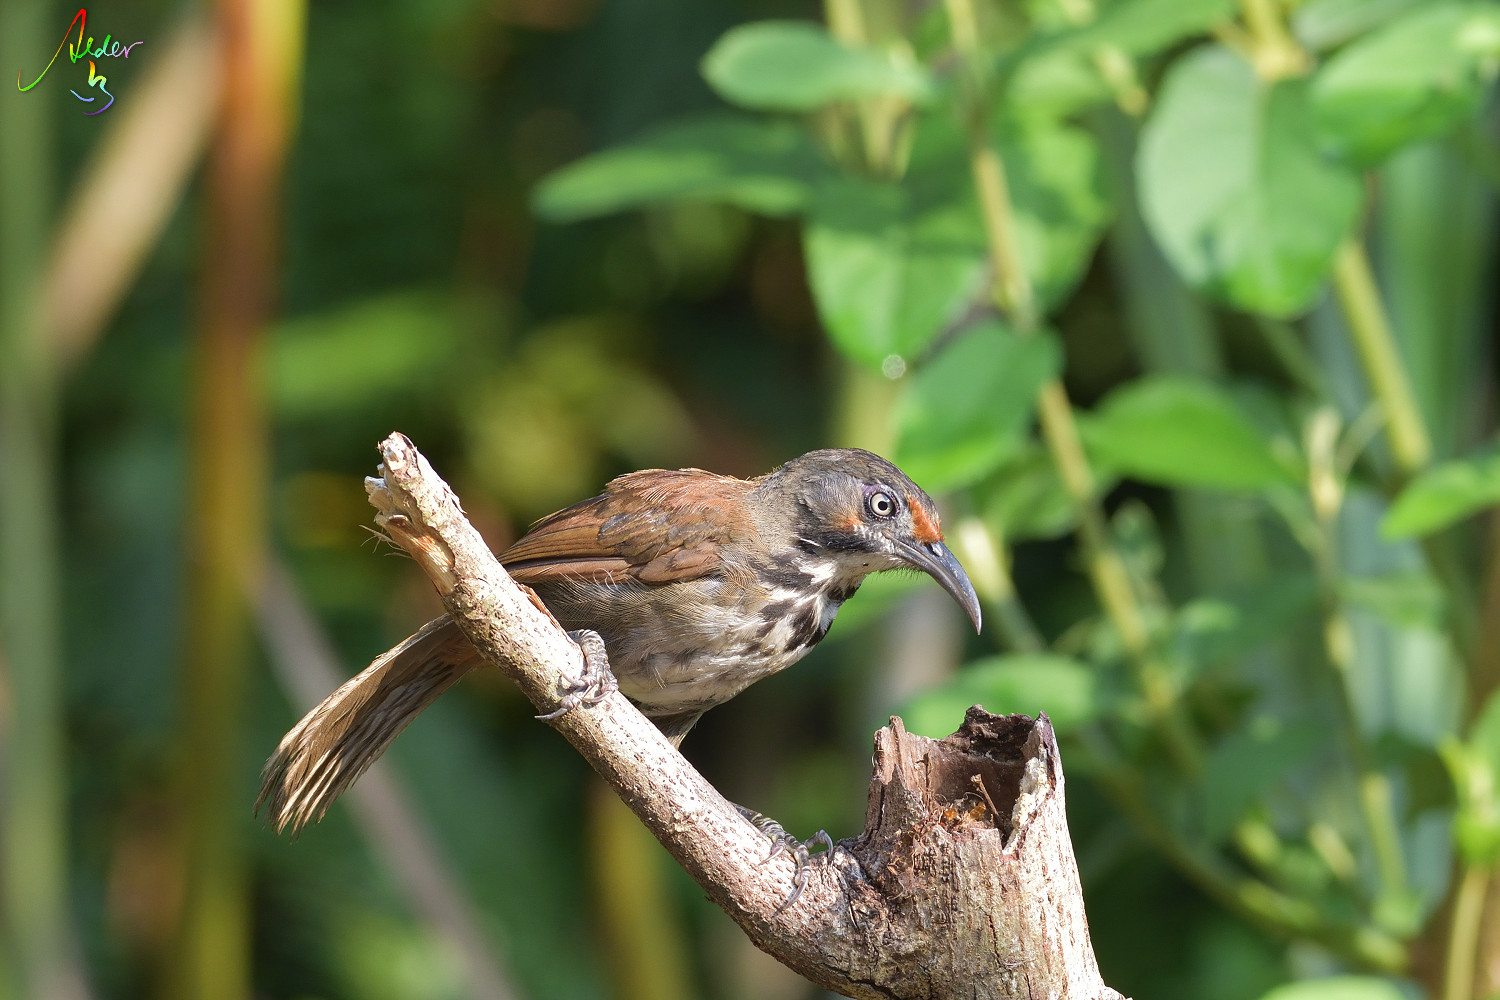 Rusty-cheeked_Scimitar_Babbler_4588